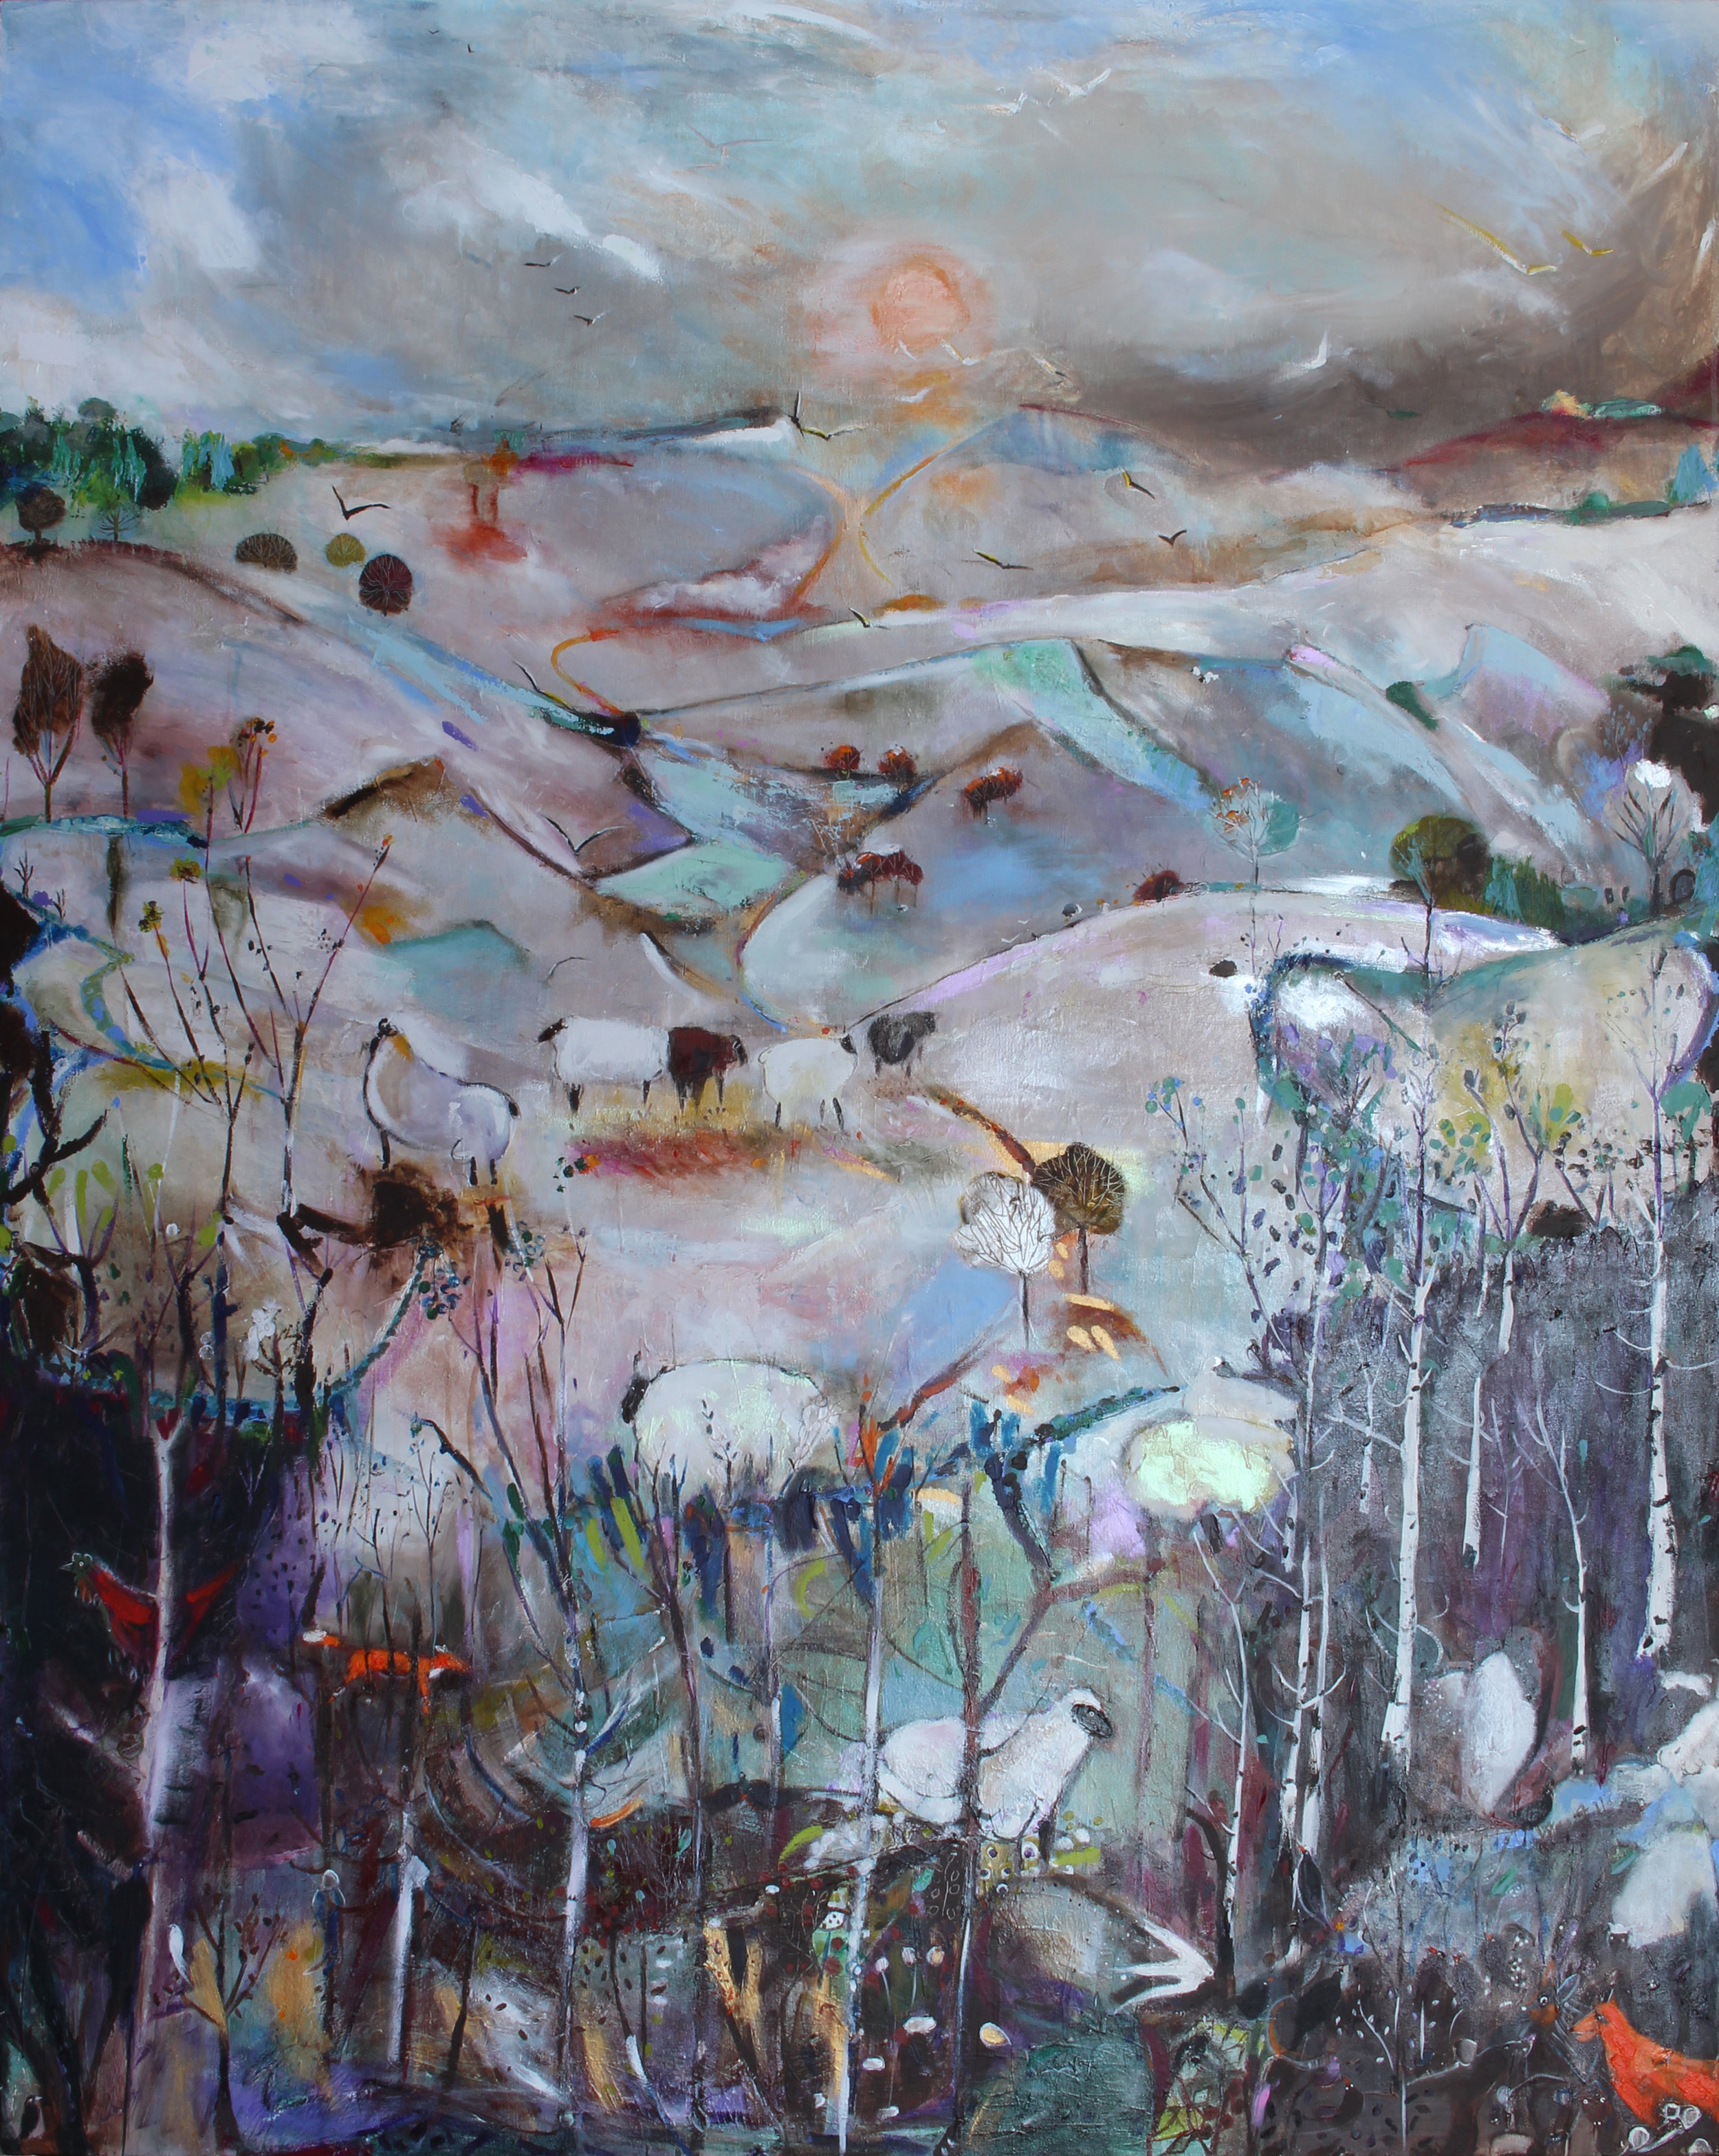 Within a Winter Landscape, acrylic on canvas, 158 x 127 cm